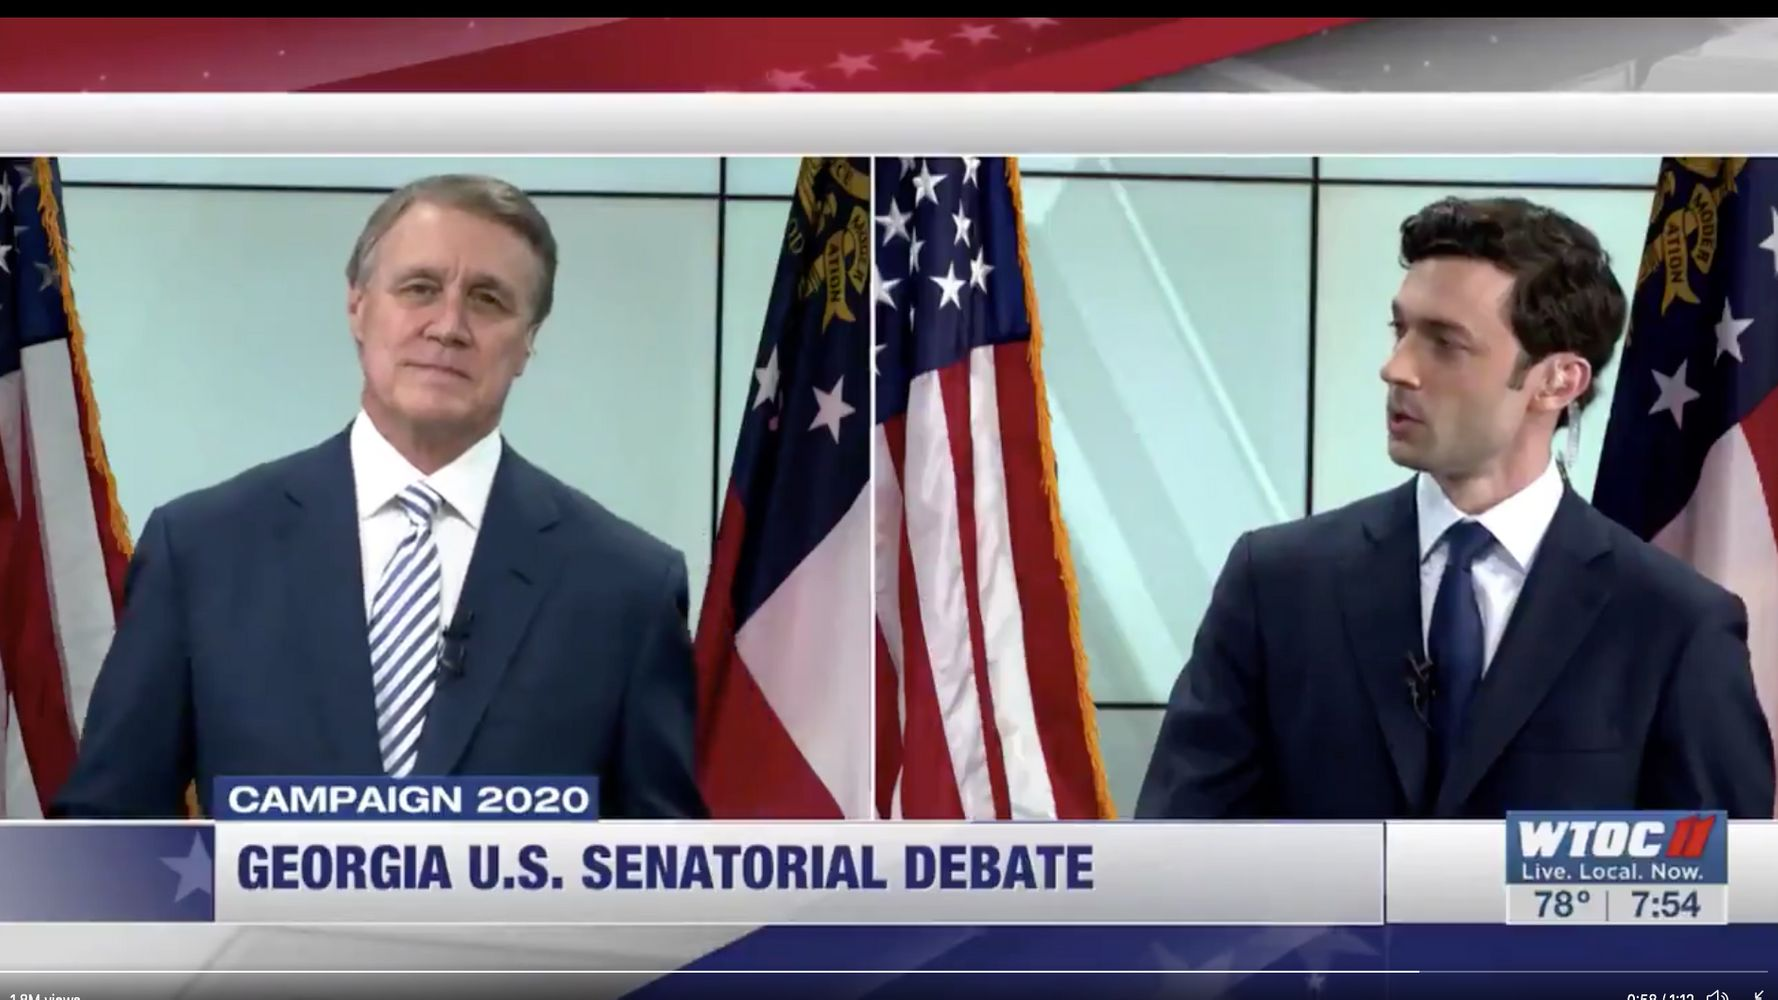 Jon Ossoff Calls Sen. David Perdue A 'Crook' To His Face In Heated Debate